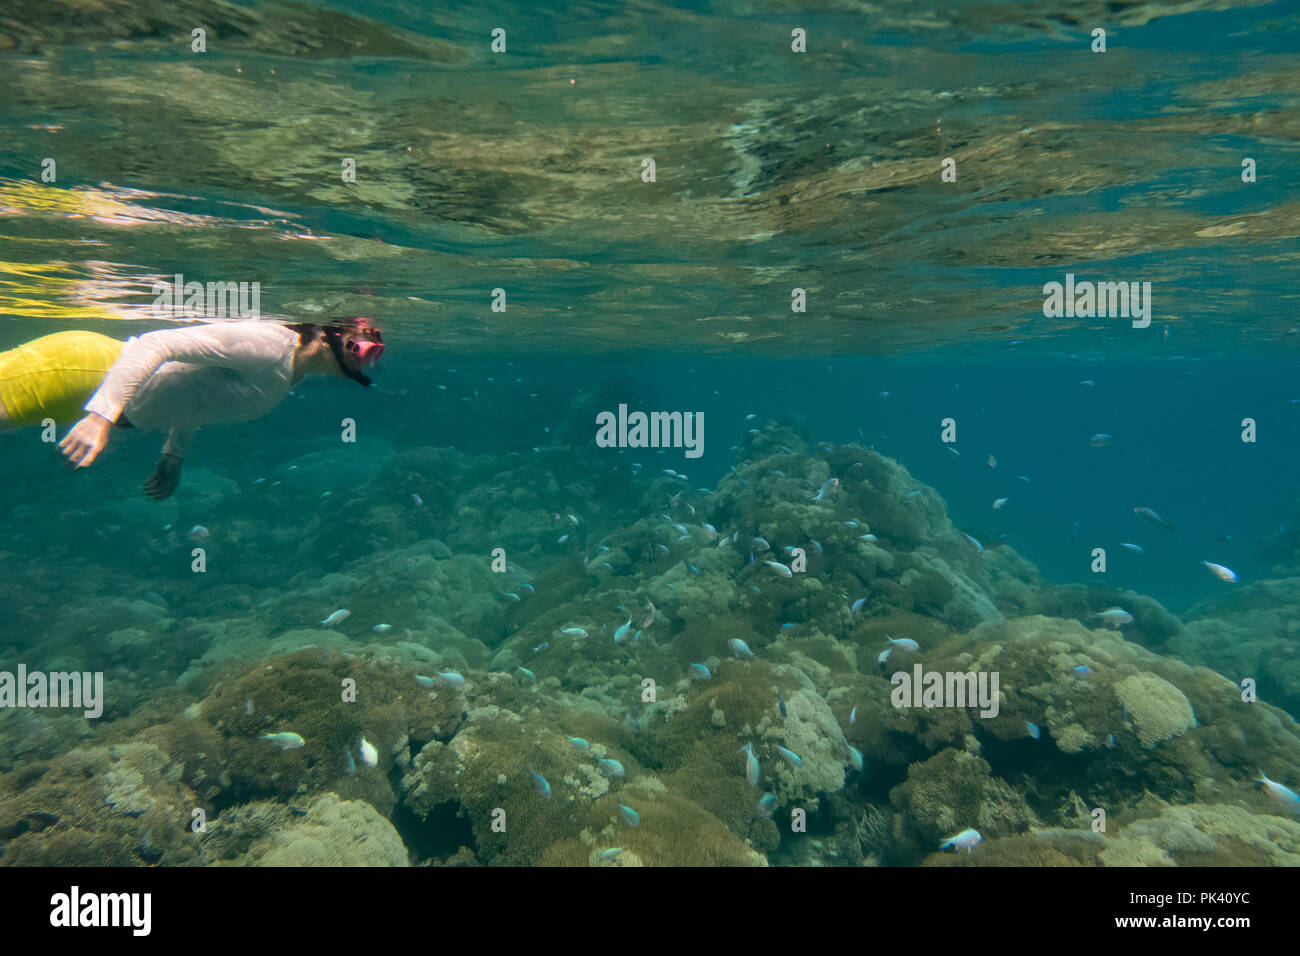 A snorkeler looking at blue damselfish and dead coral due to climate change and coral bleaching at Millennium atoll, Kiribati - Stock Image